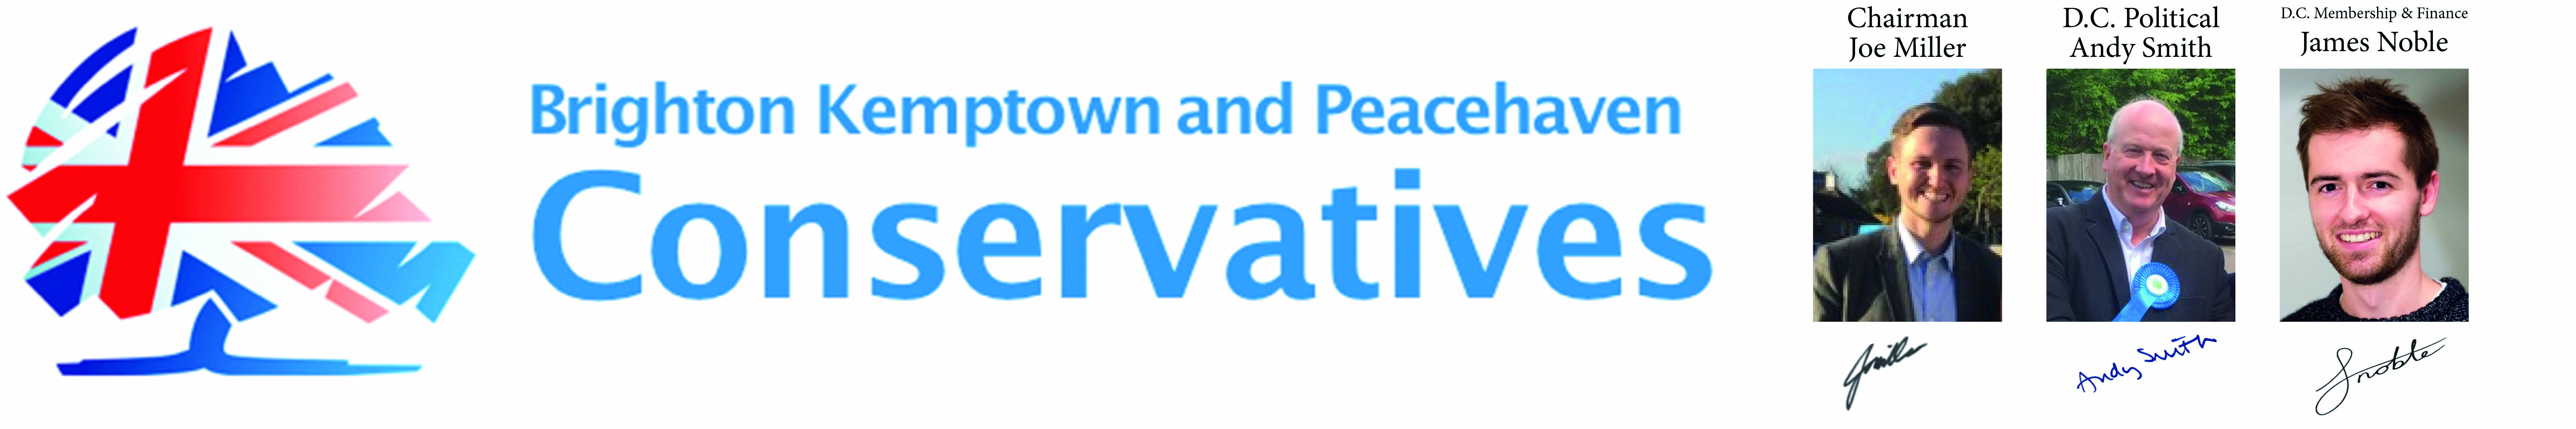 Your Brighton Kemptown & Peacehaven Conservative Association